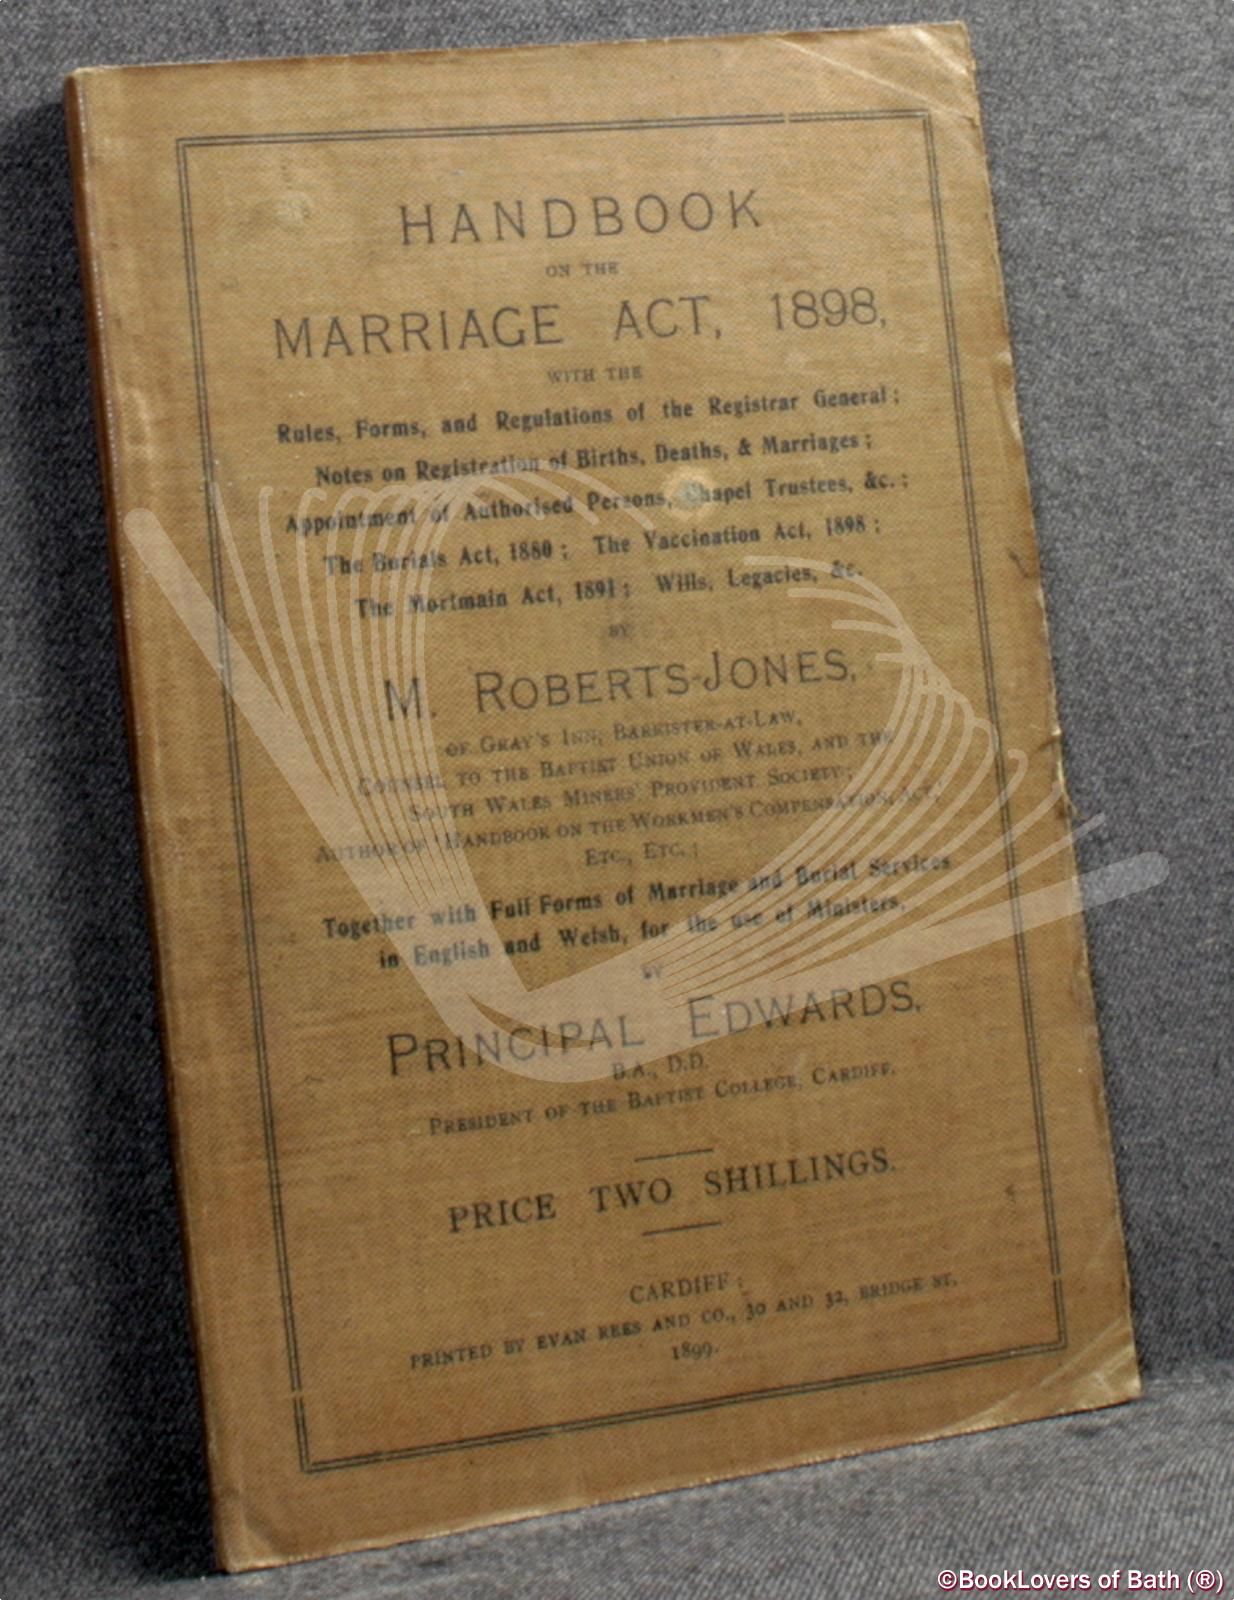 Handbook on the Marriage Act, 1898; Together with Full Forms of the Marriage and Burial Services in English and Welsh - M. Roberts-Jones